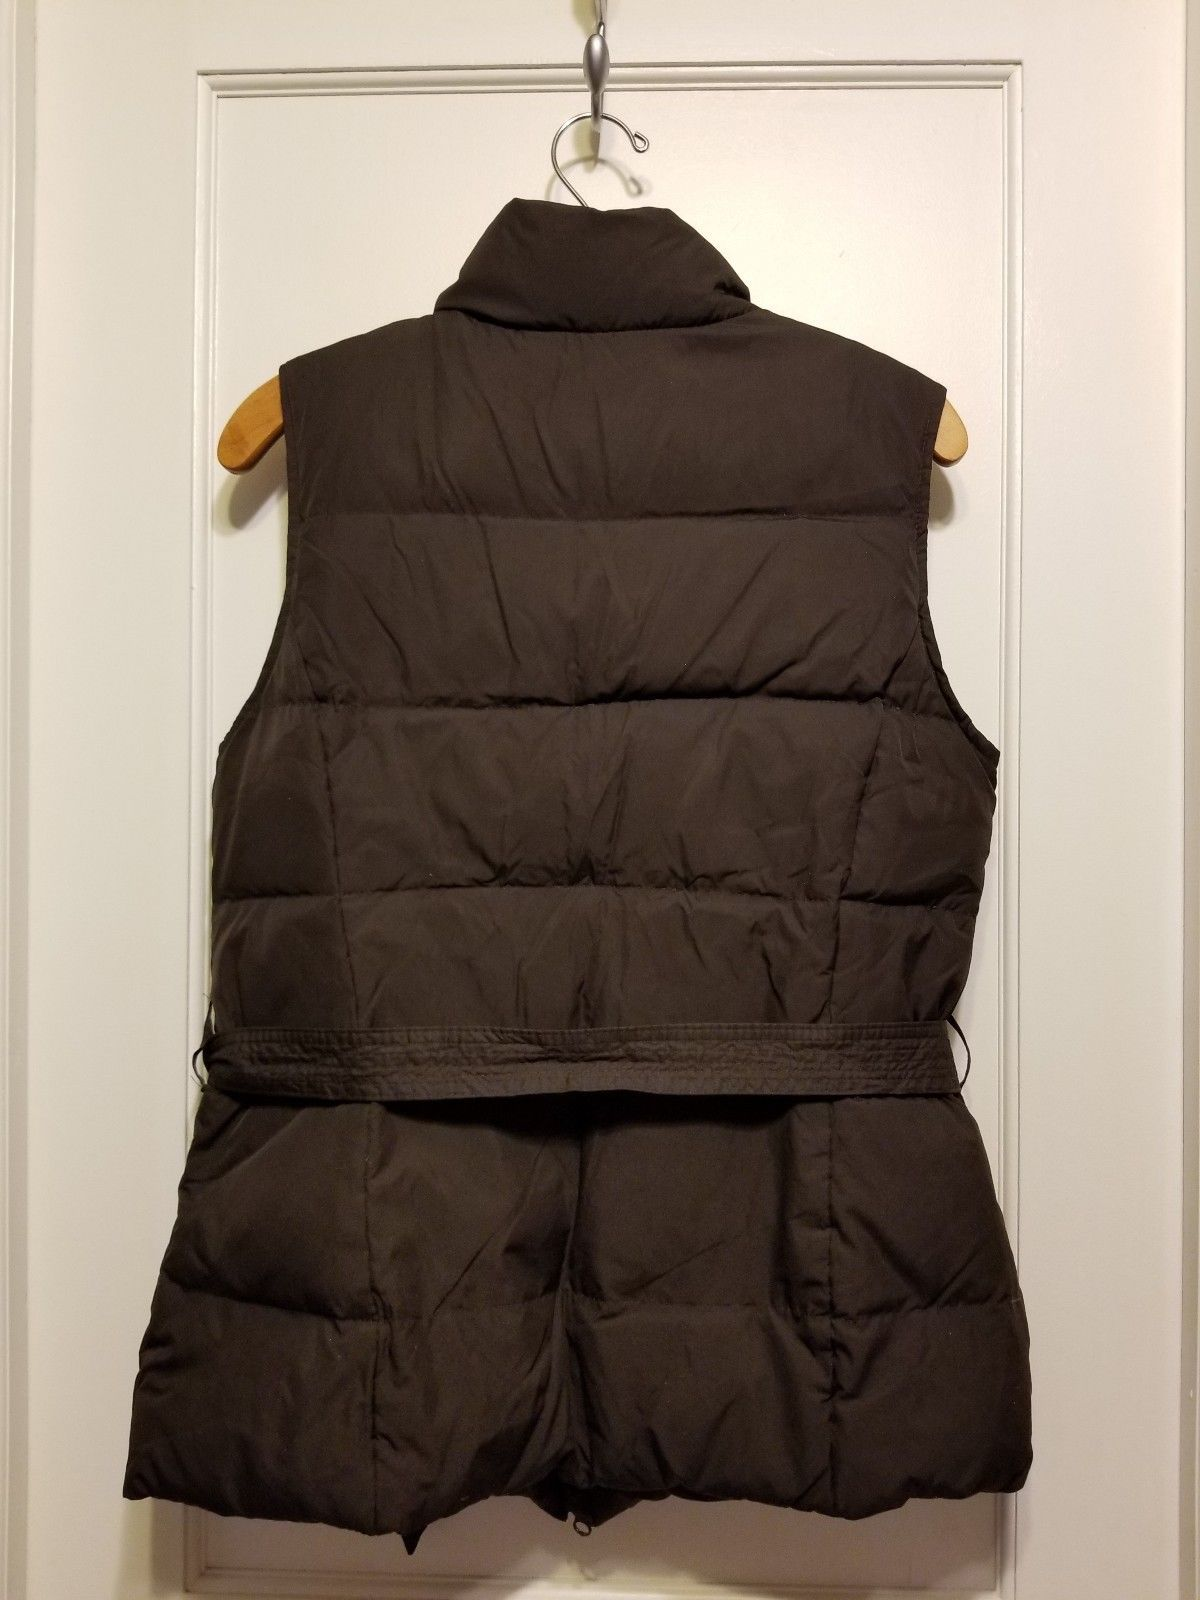 GAP Women's Belted Puffer Vest, Lined, Brown, Size M, Pre-owned